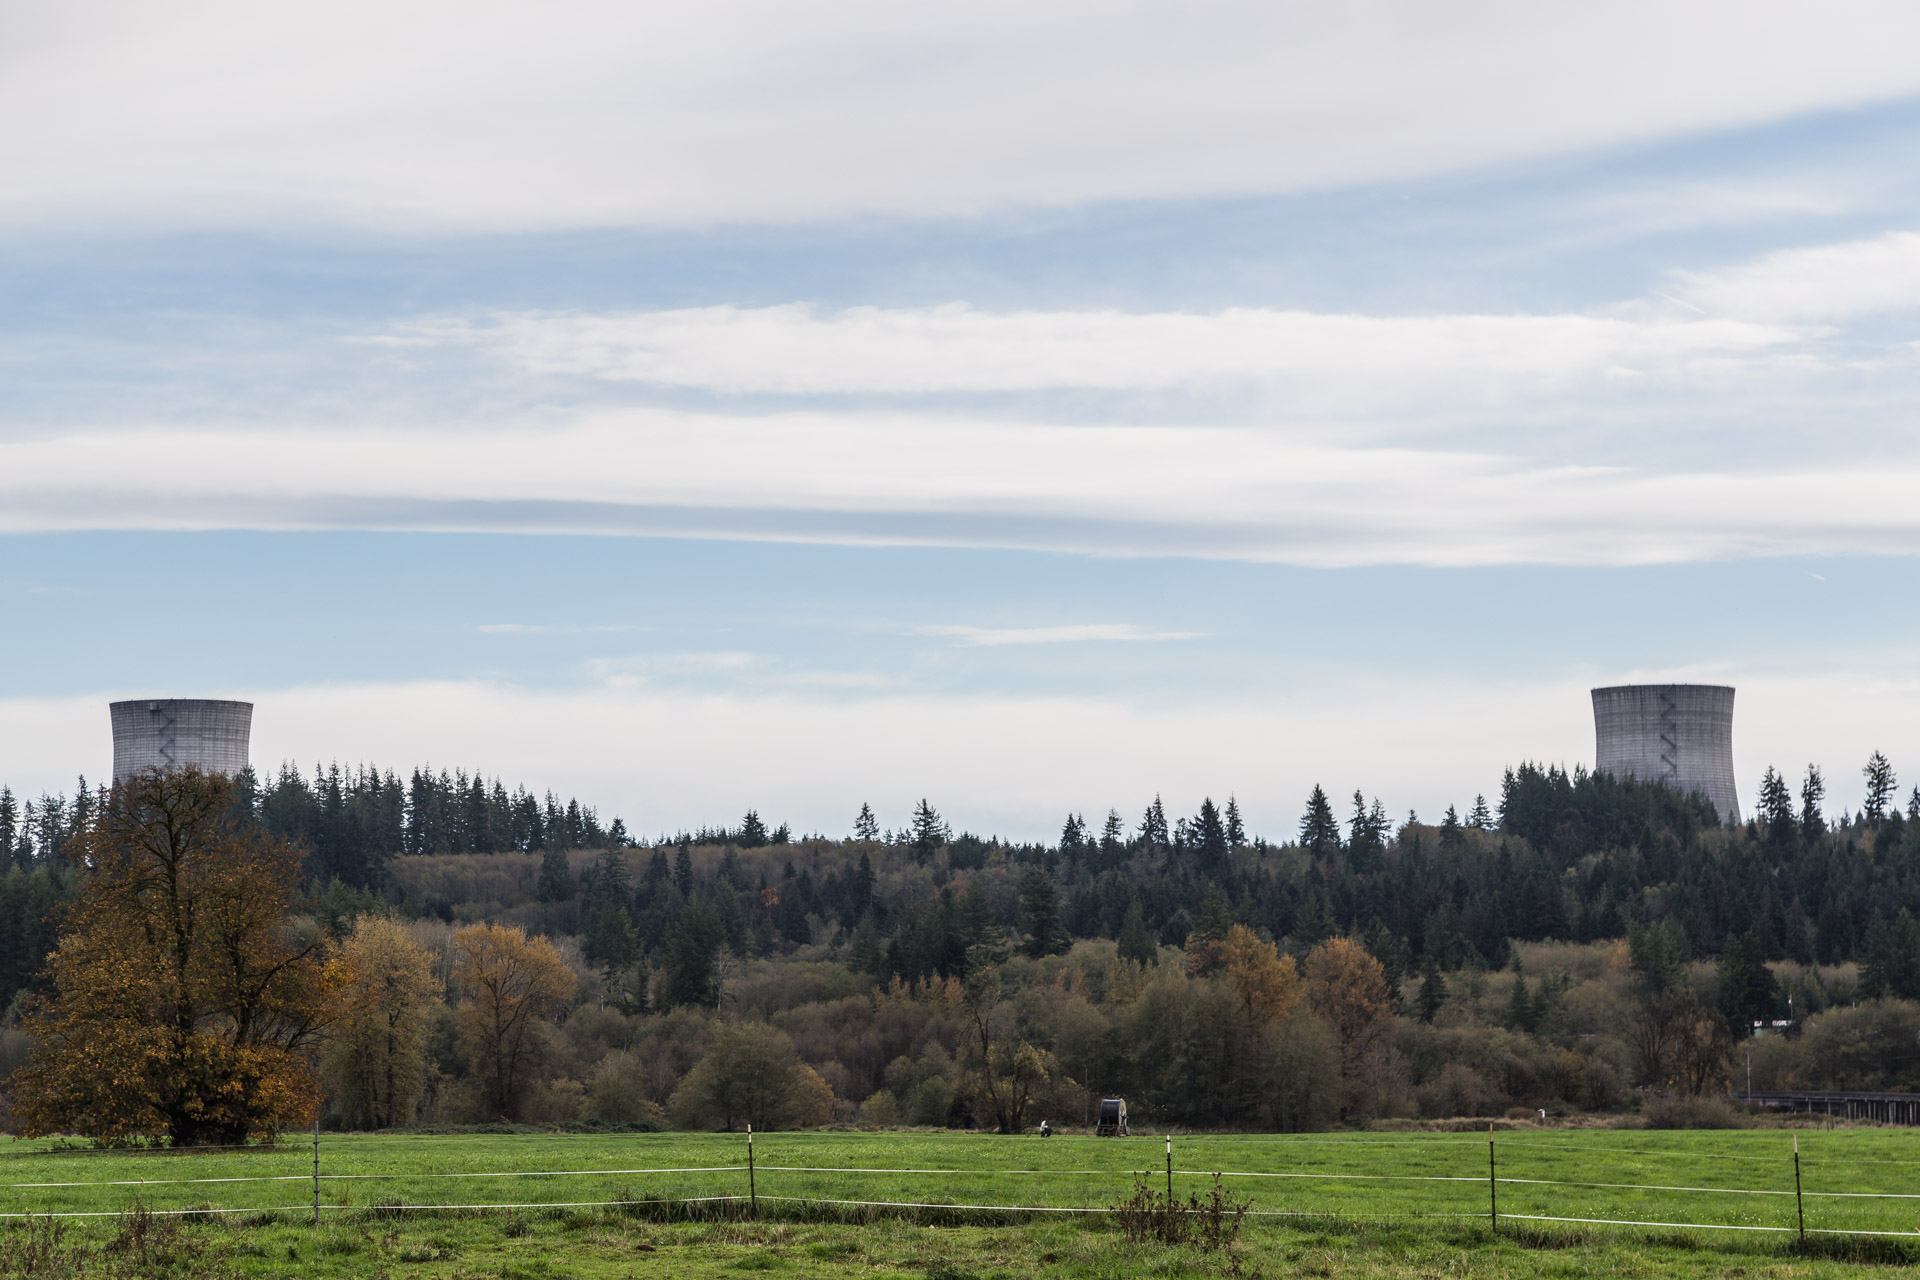 Satsop (far farm)